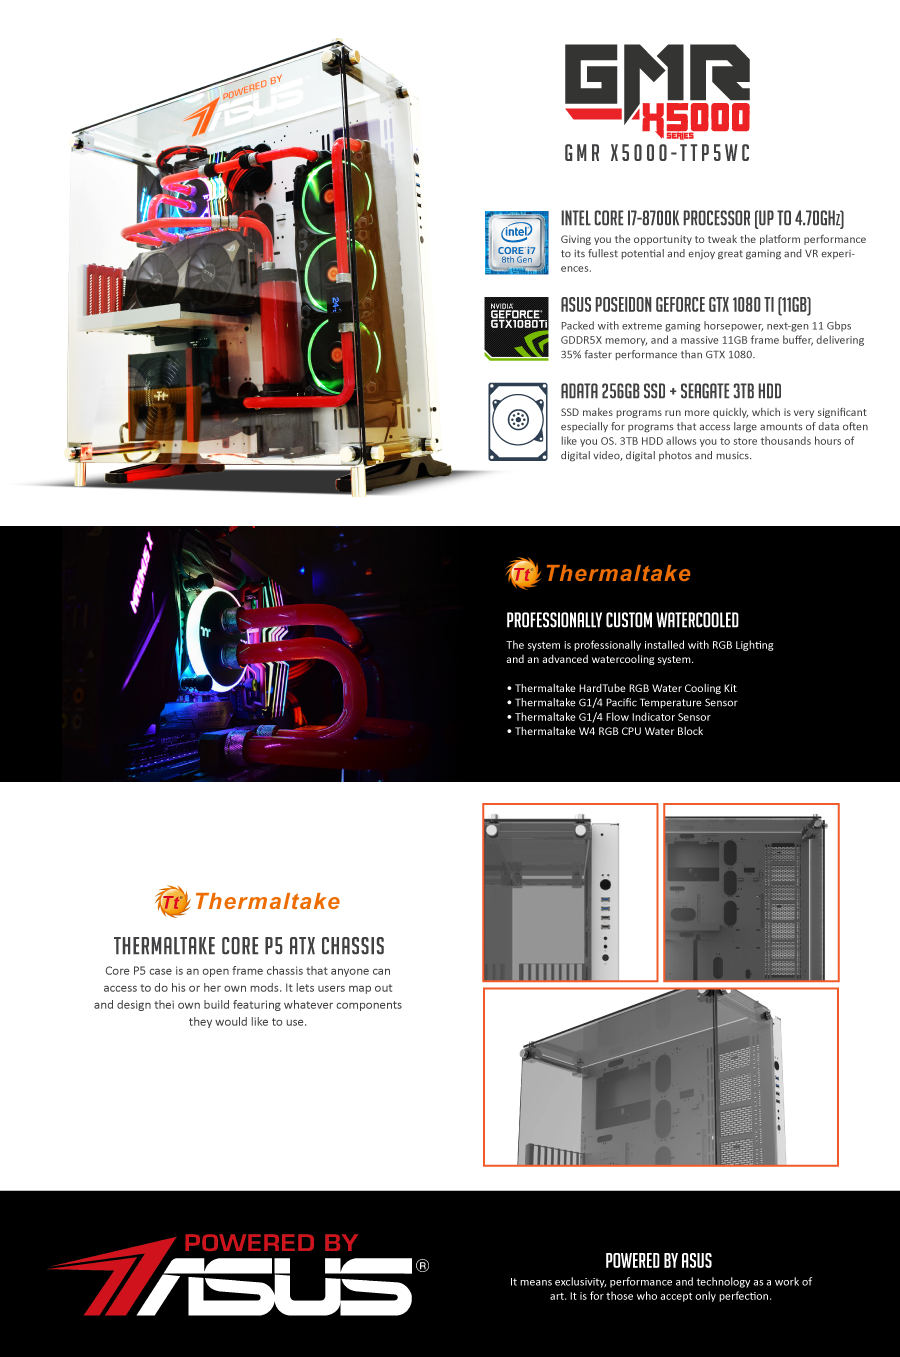 GMR X5000-TTP5WC Custom Water Cooled Limited Edition Gaming PC With  GTX1080Ti 11GB & Intel Core i7 8700K (Up to 4 7Ghz)